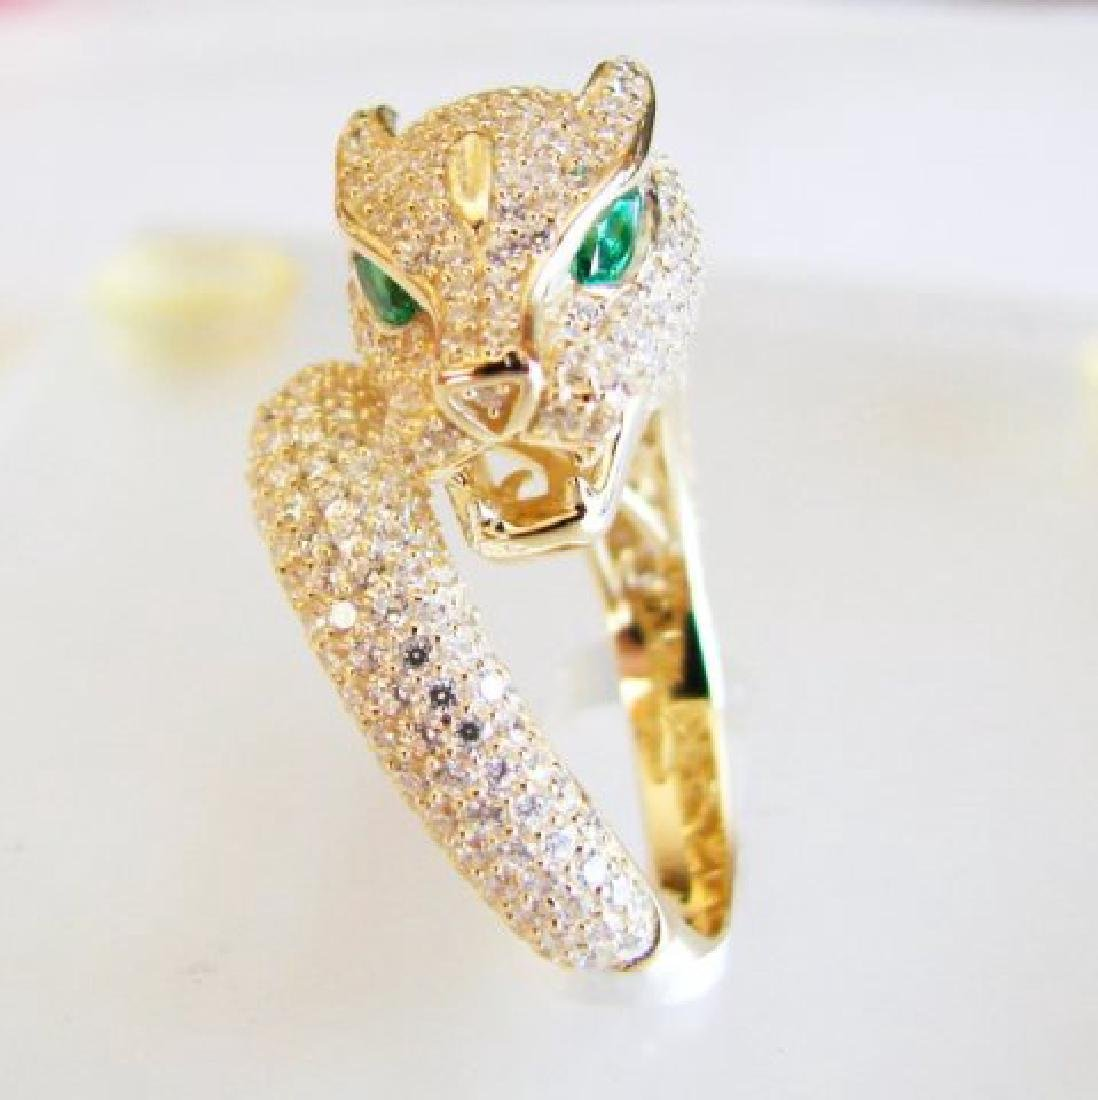 Creation Diamond Juguar Ring 3.65Ct18k Y/G Overaly - 2